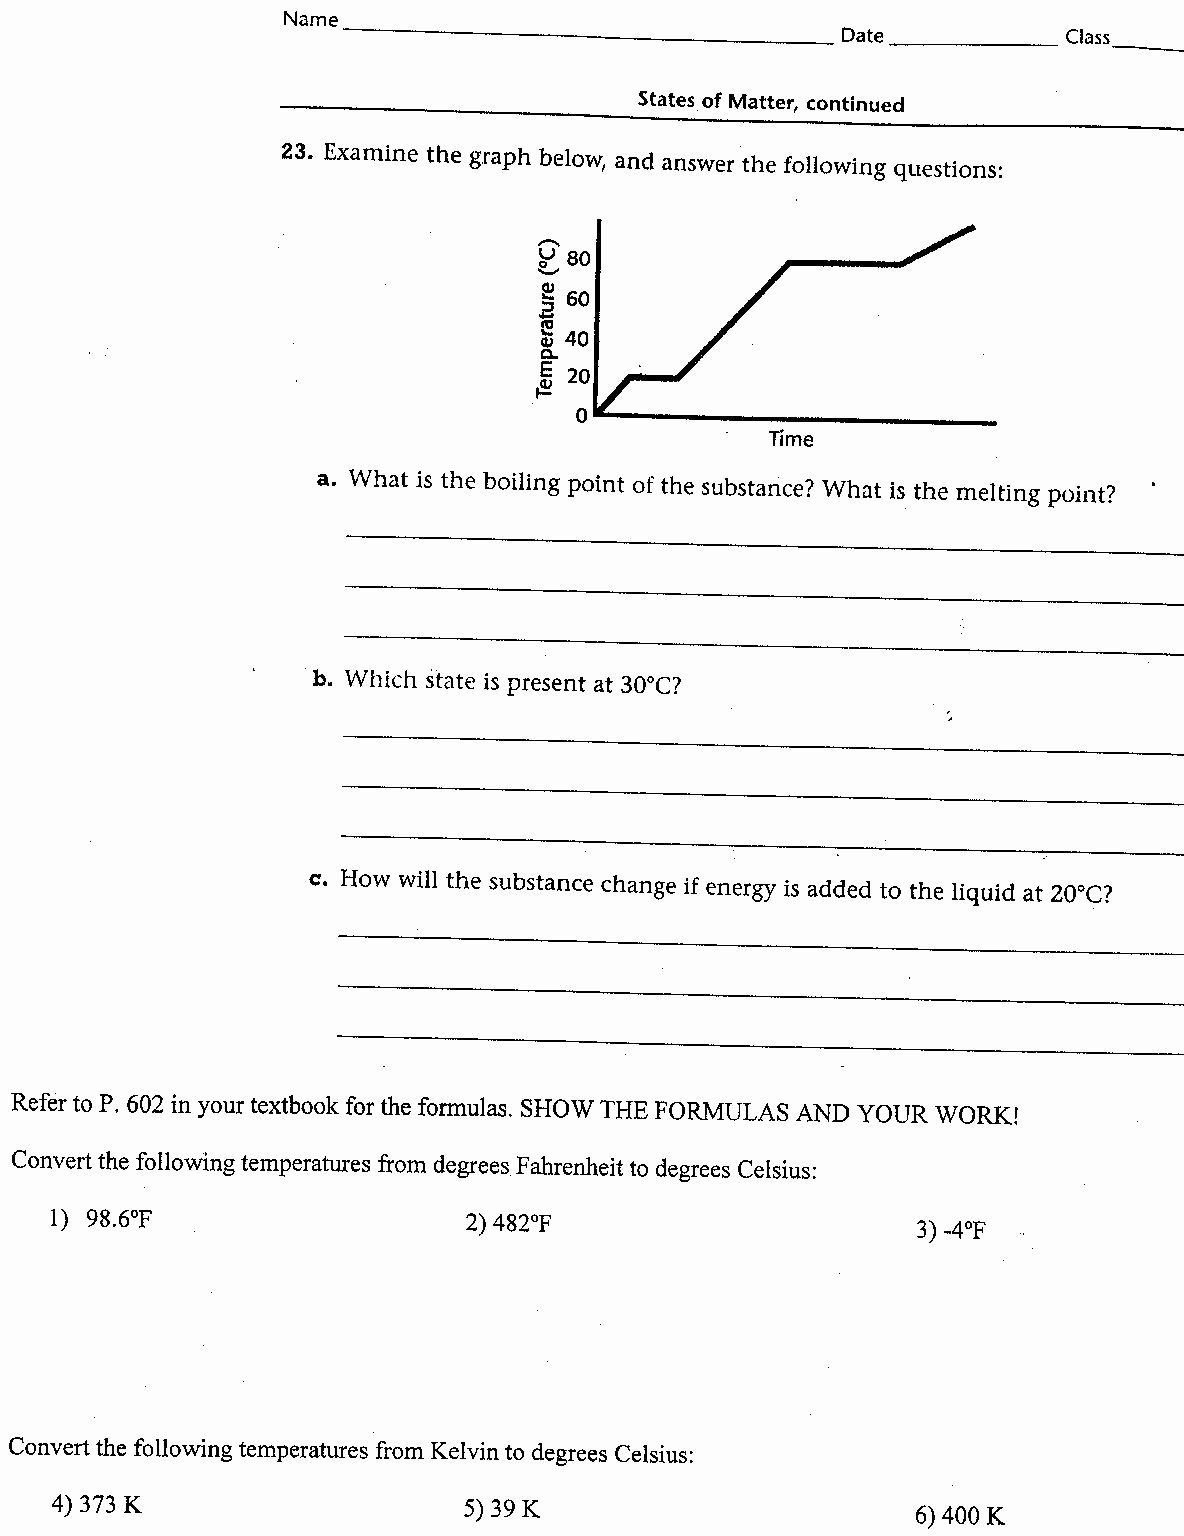 Heating and Cooling Curve Worksheet Lovely Heating and Cooling Curves Worksheet